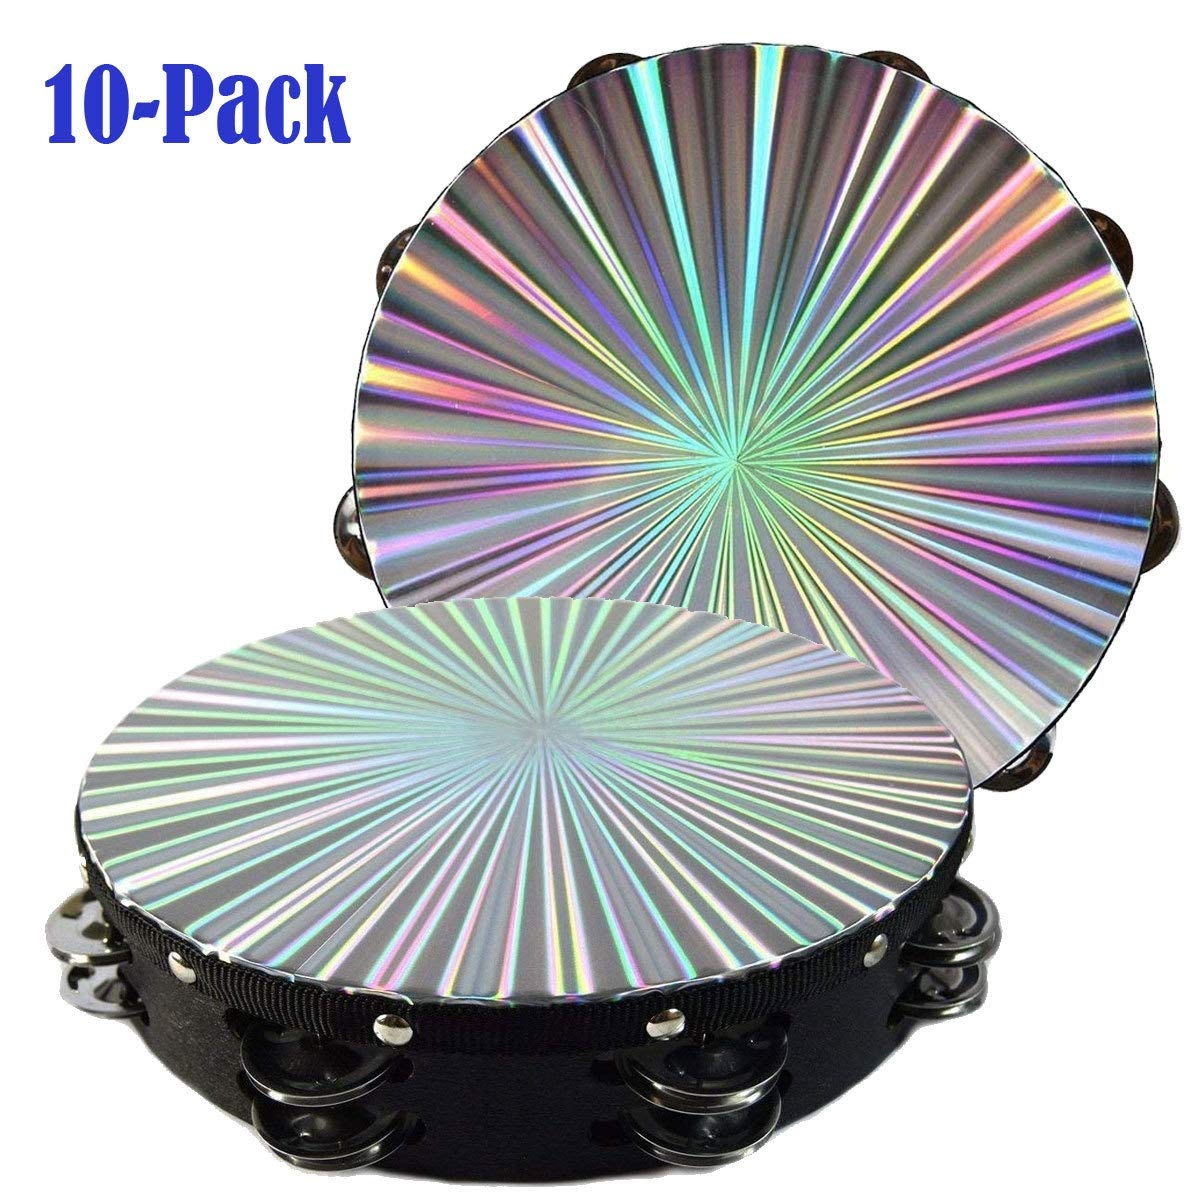 10 Pack 8'' 3D Tambourine Music Double Row Jingle Percussion Instrument Church by Zebra Sound